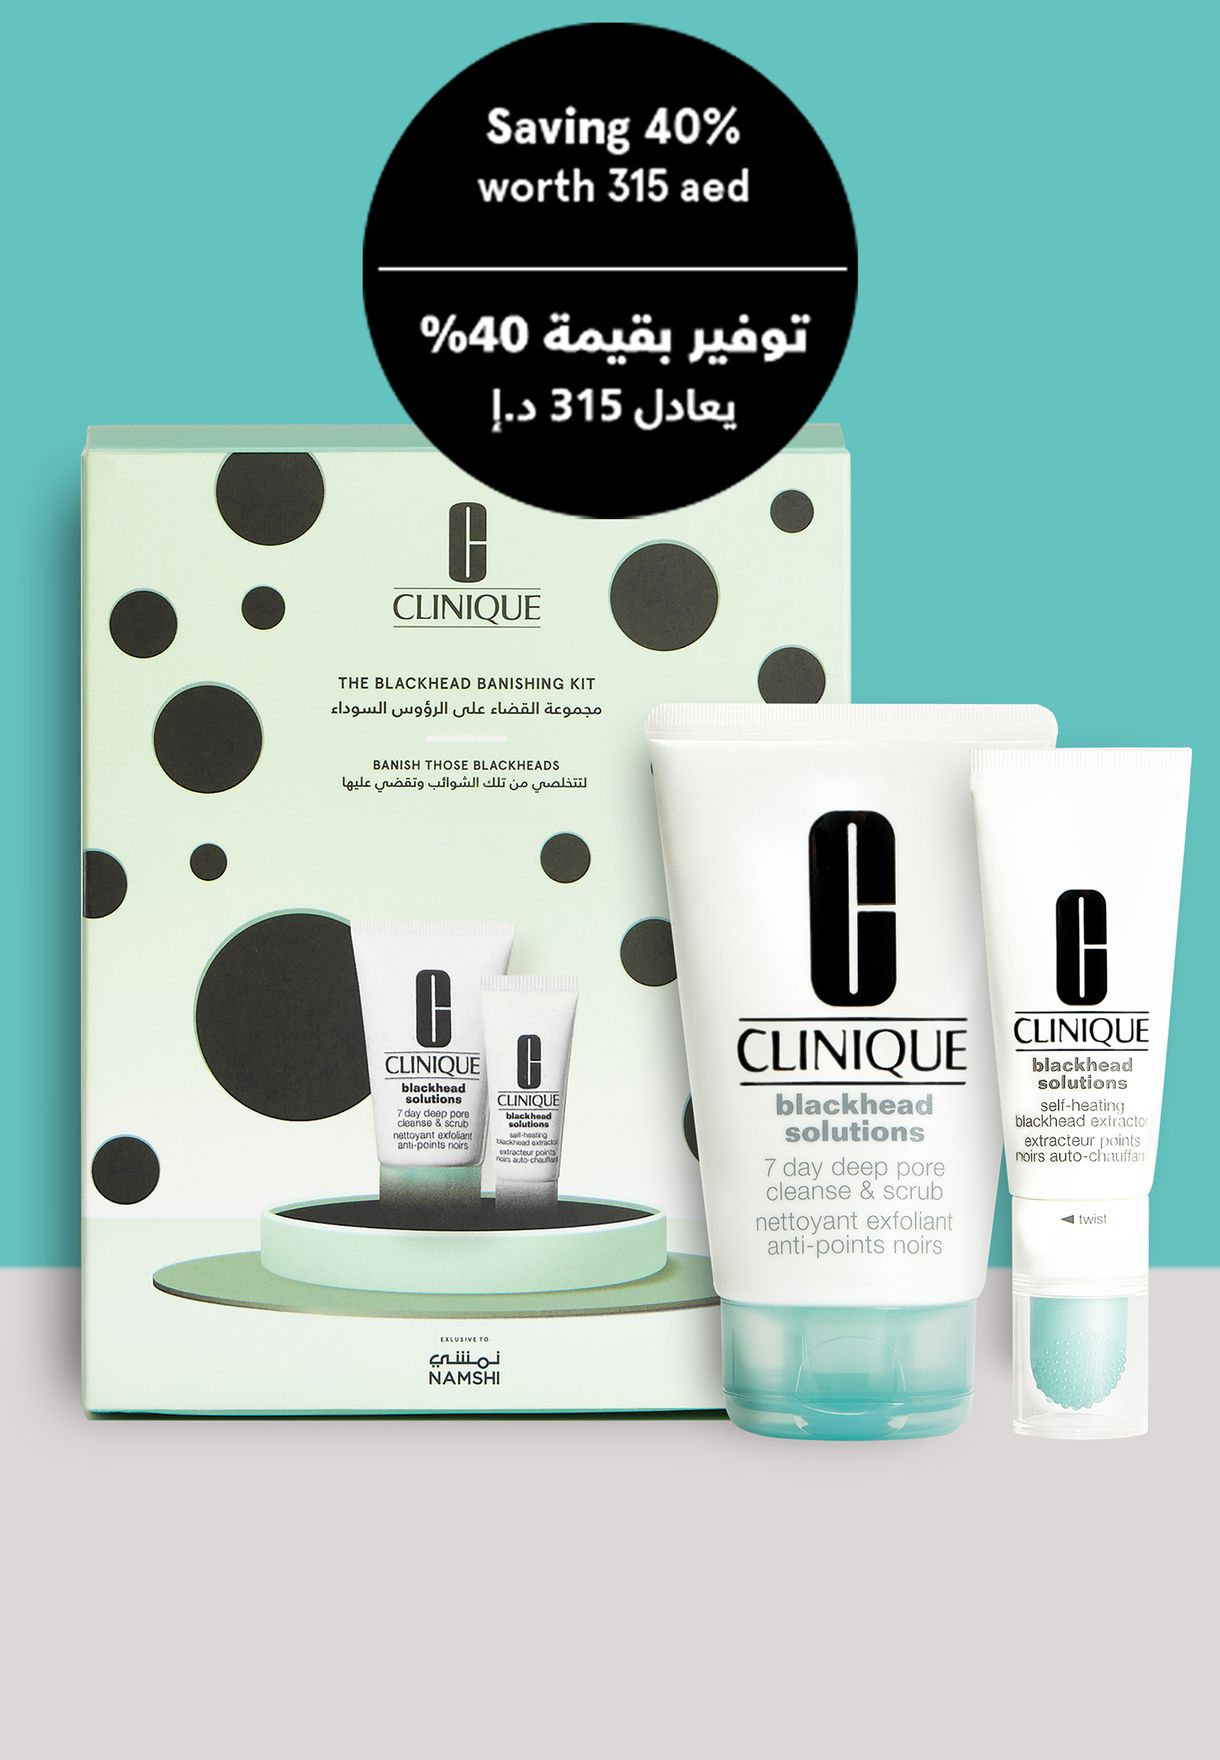 Blackhead Extractor + Pore Cleanser With Scrub